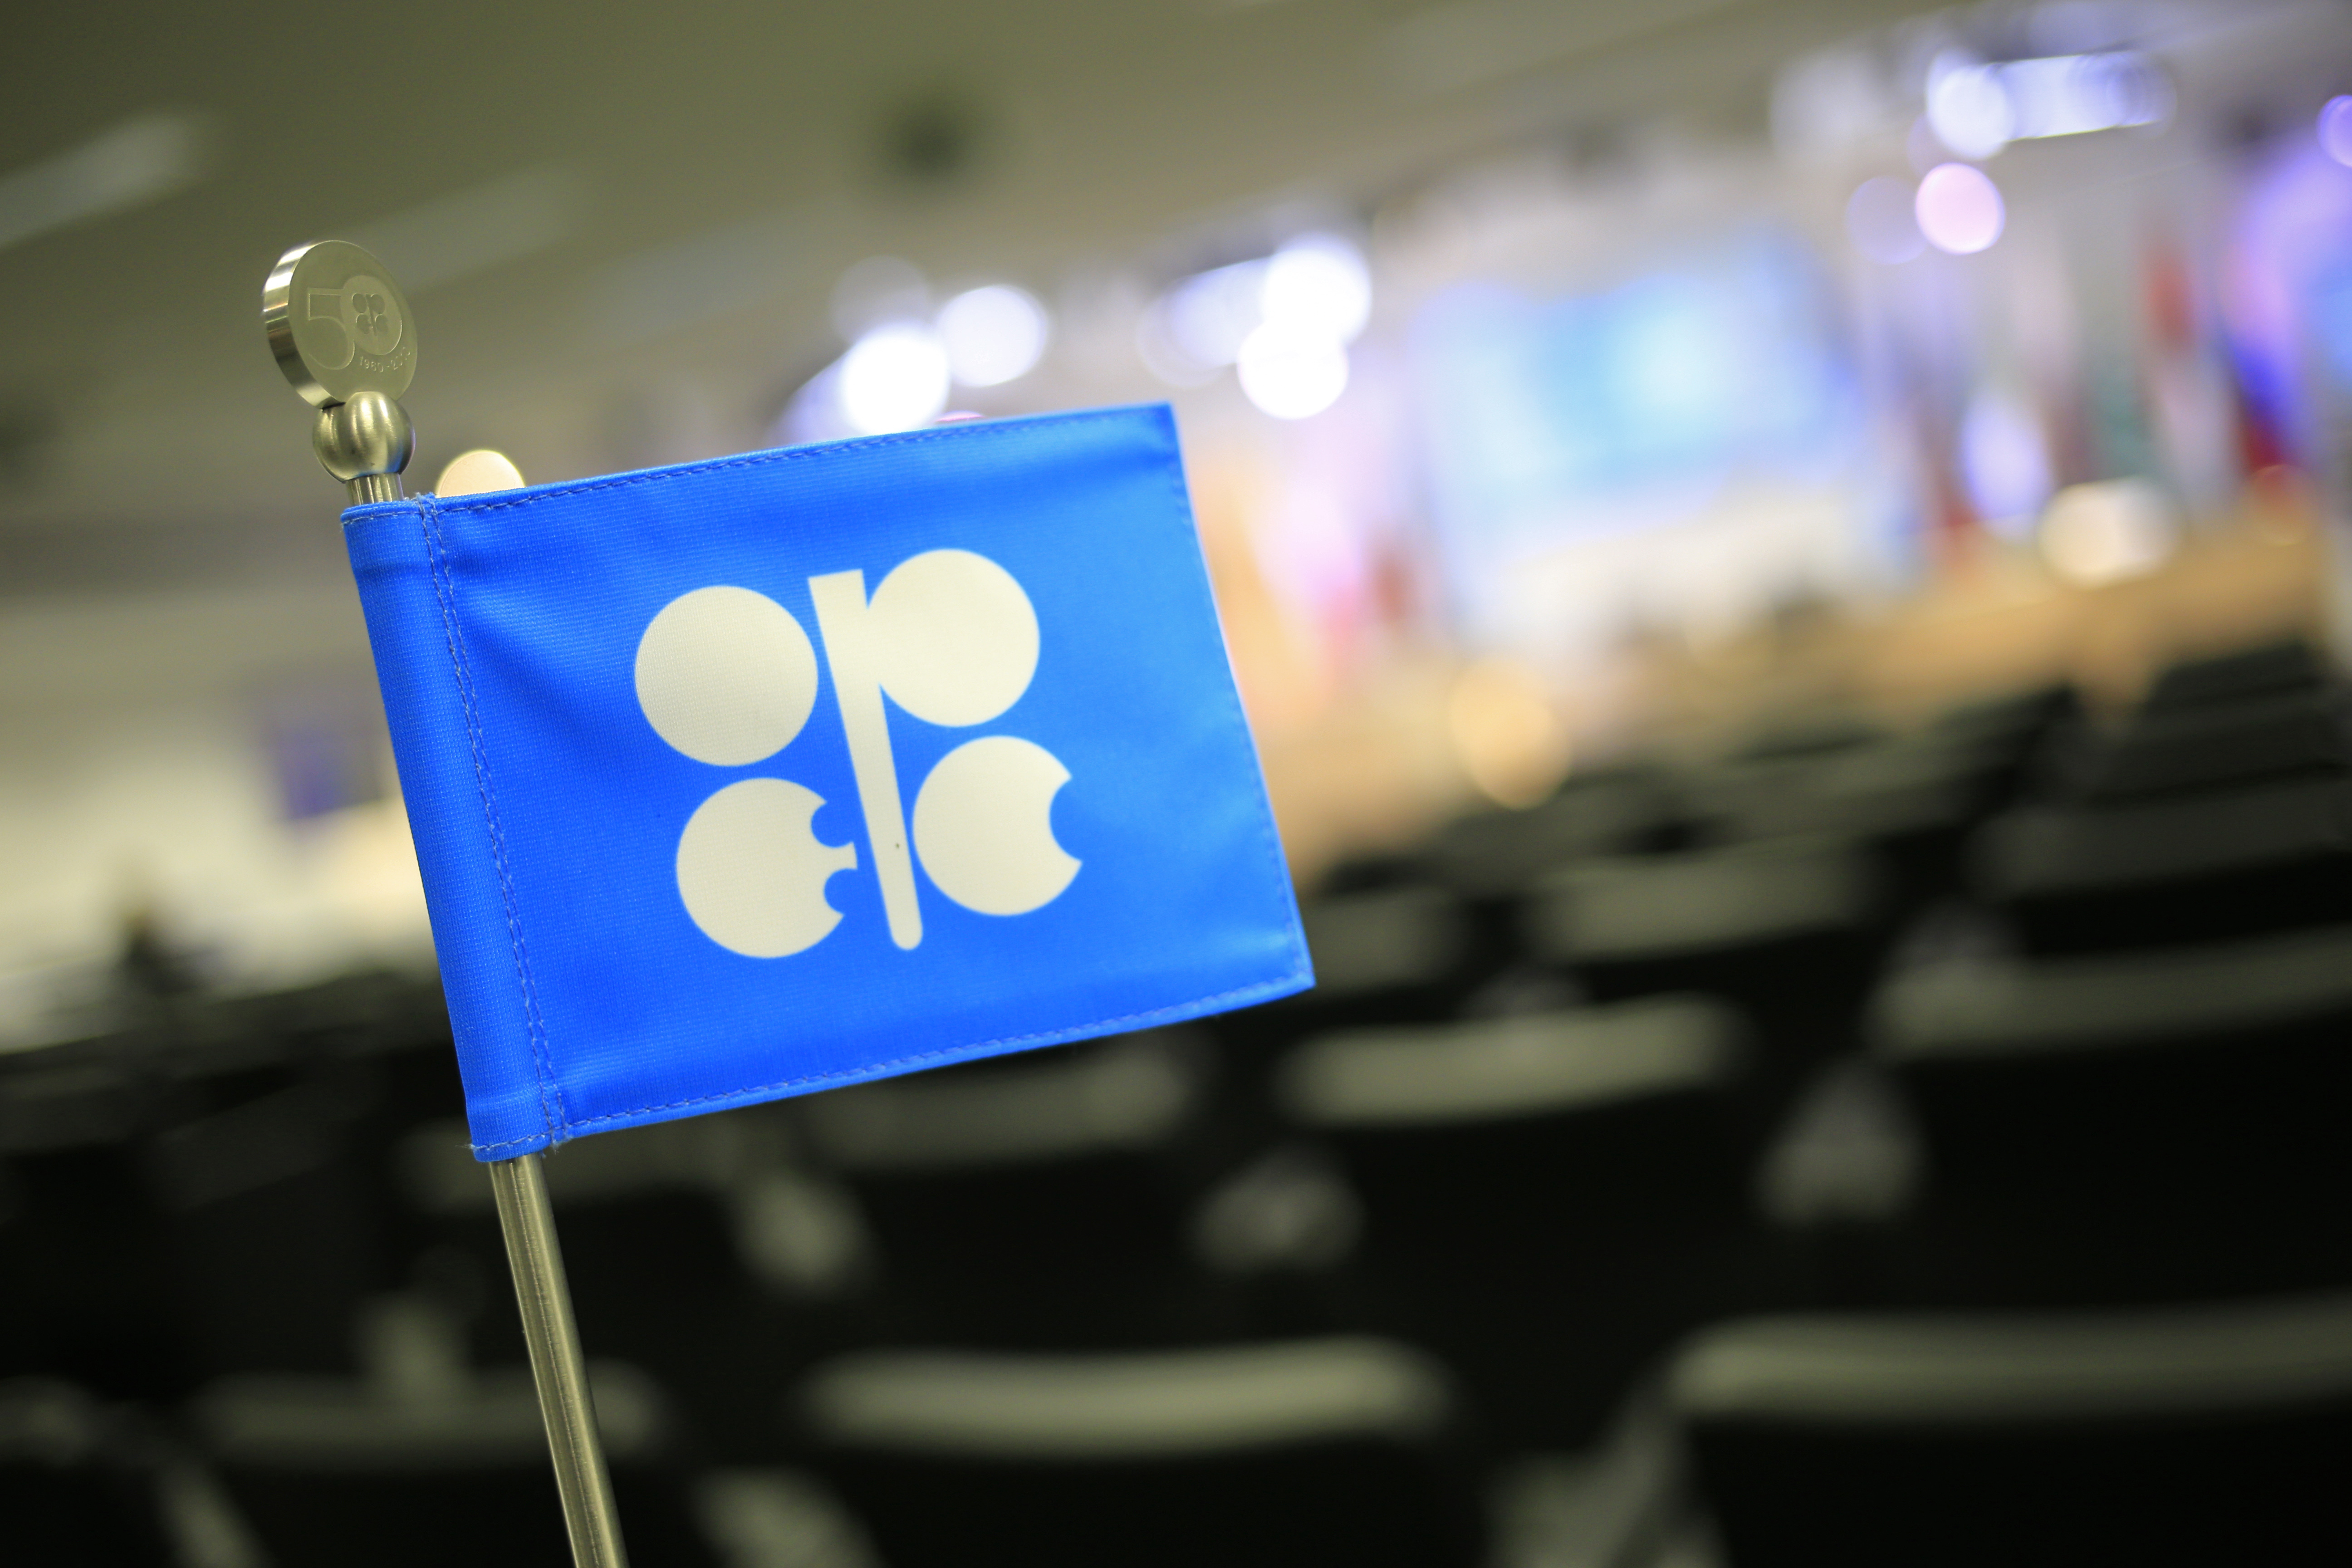 The OPEC (Organization of the Petroleum Exporting Countries) flag at the 164th OPEC meeting in Vienna on Dec. 3, 2013.